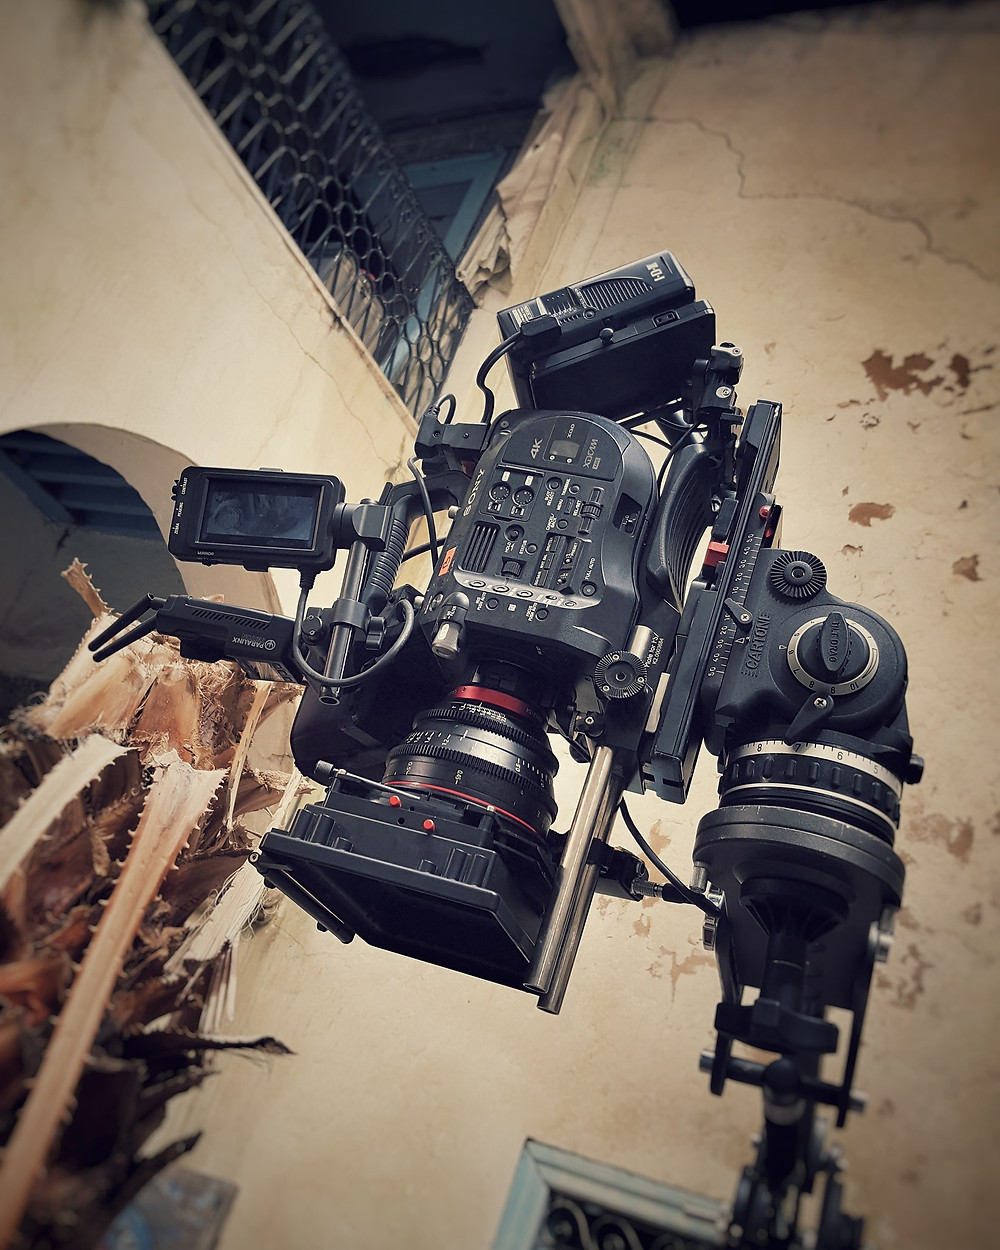 One of our Sony FS7 On a mini Jib arm